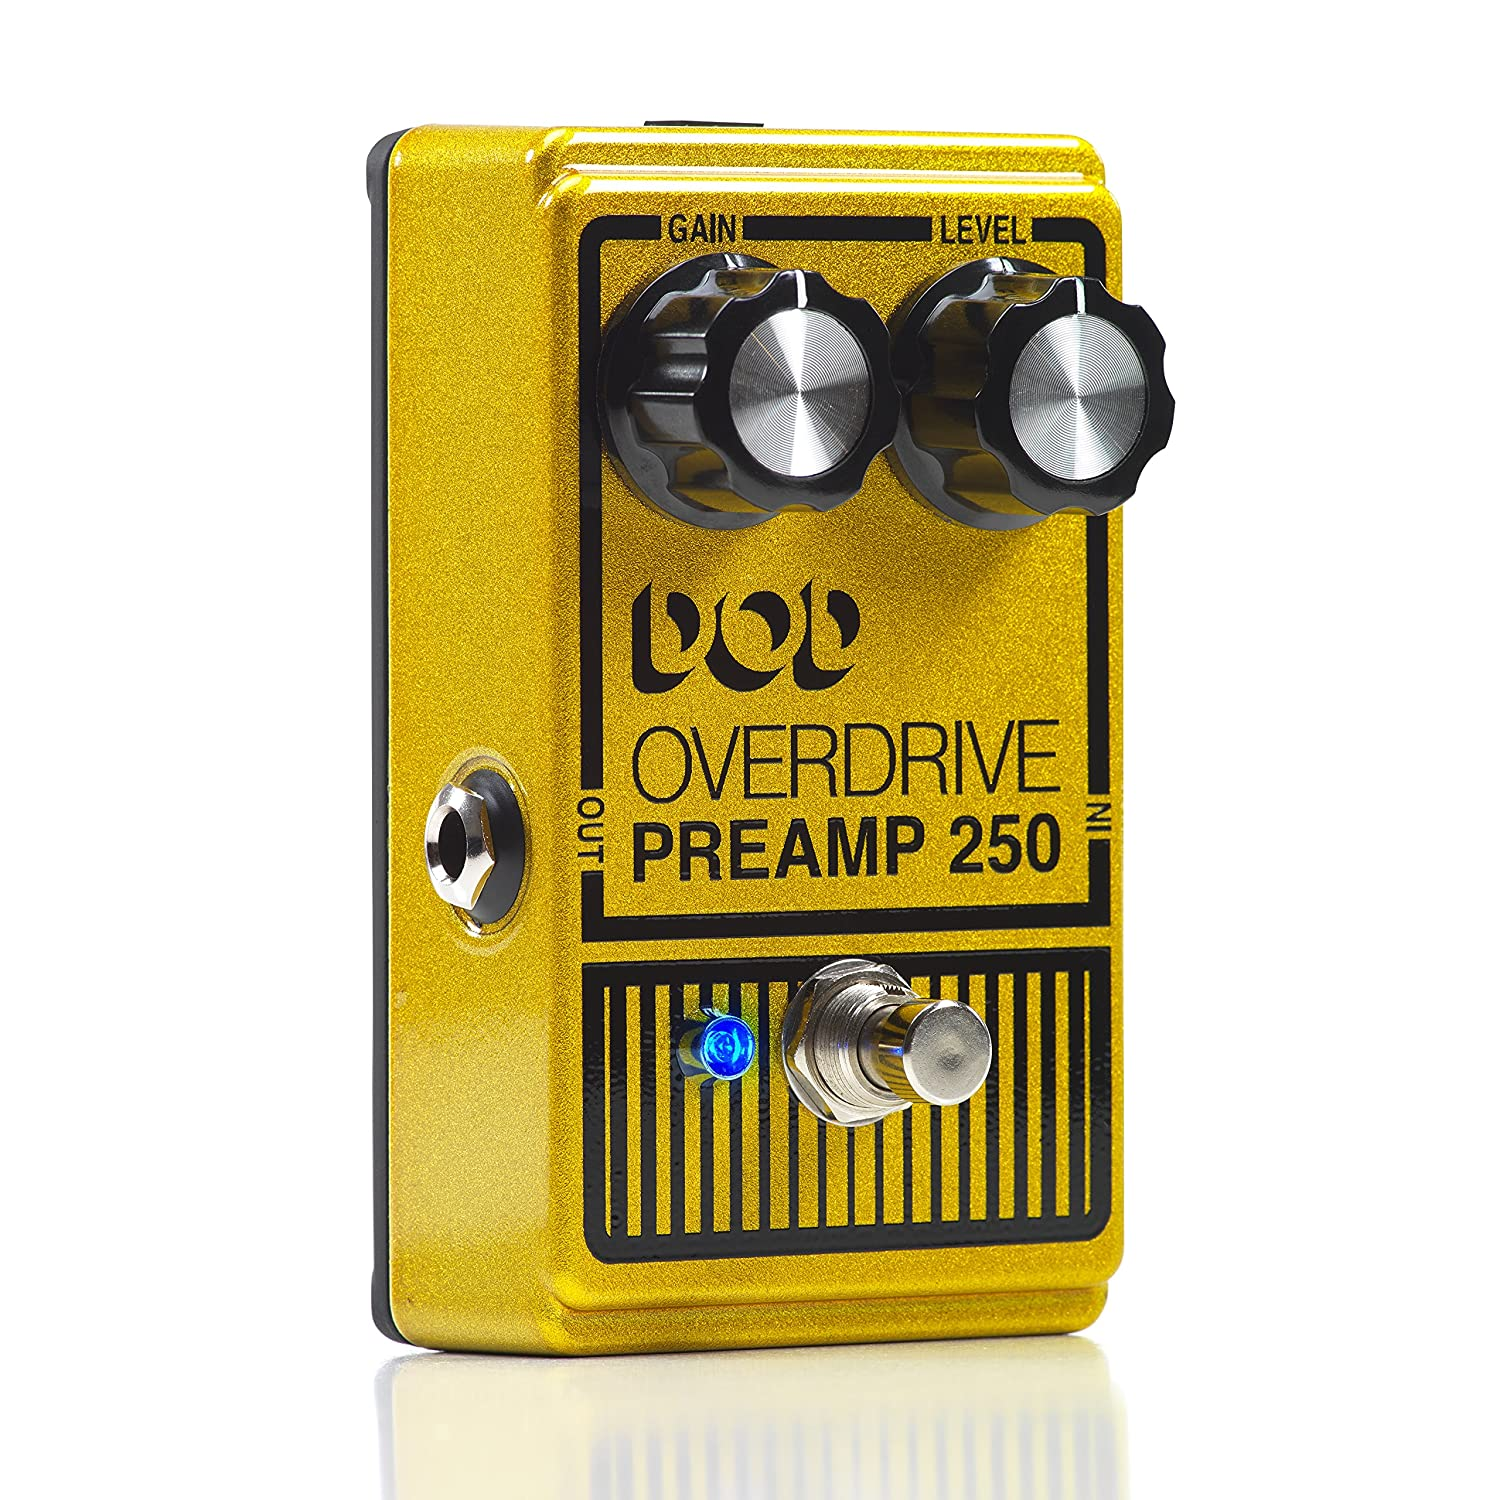 dod overdrive preamp 250 guitar effects pedal